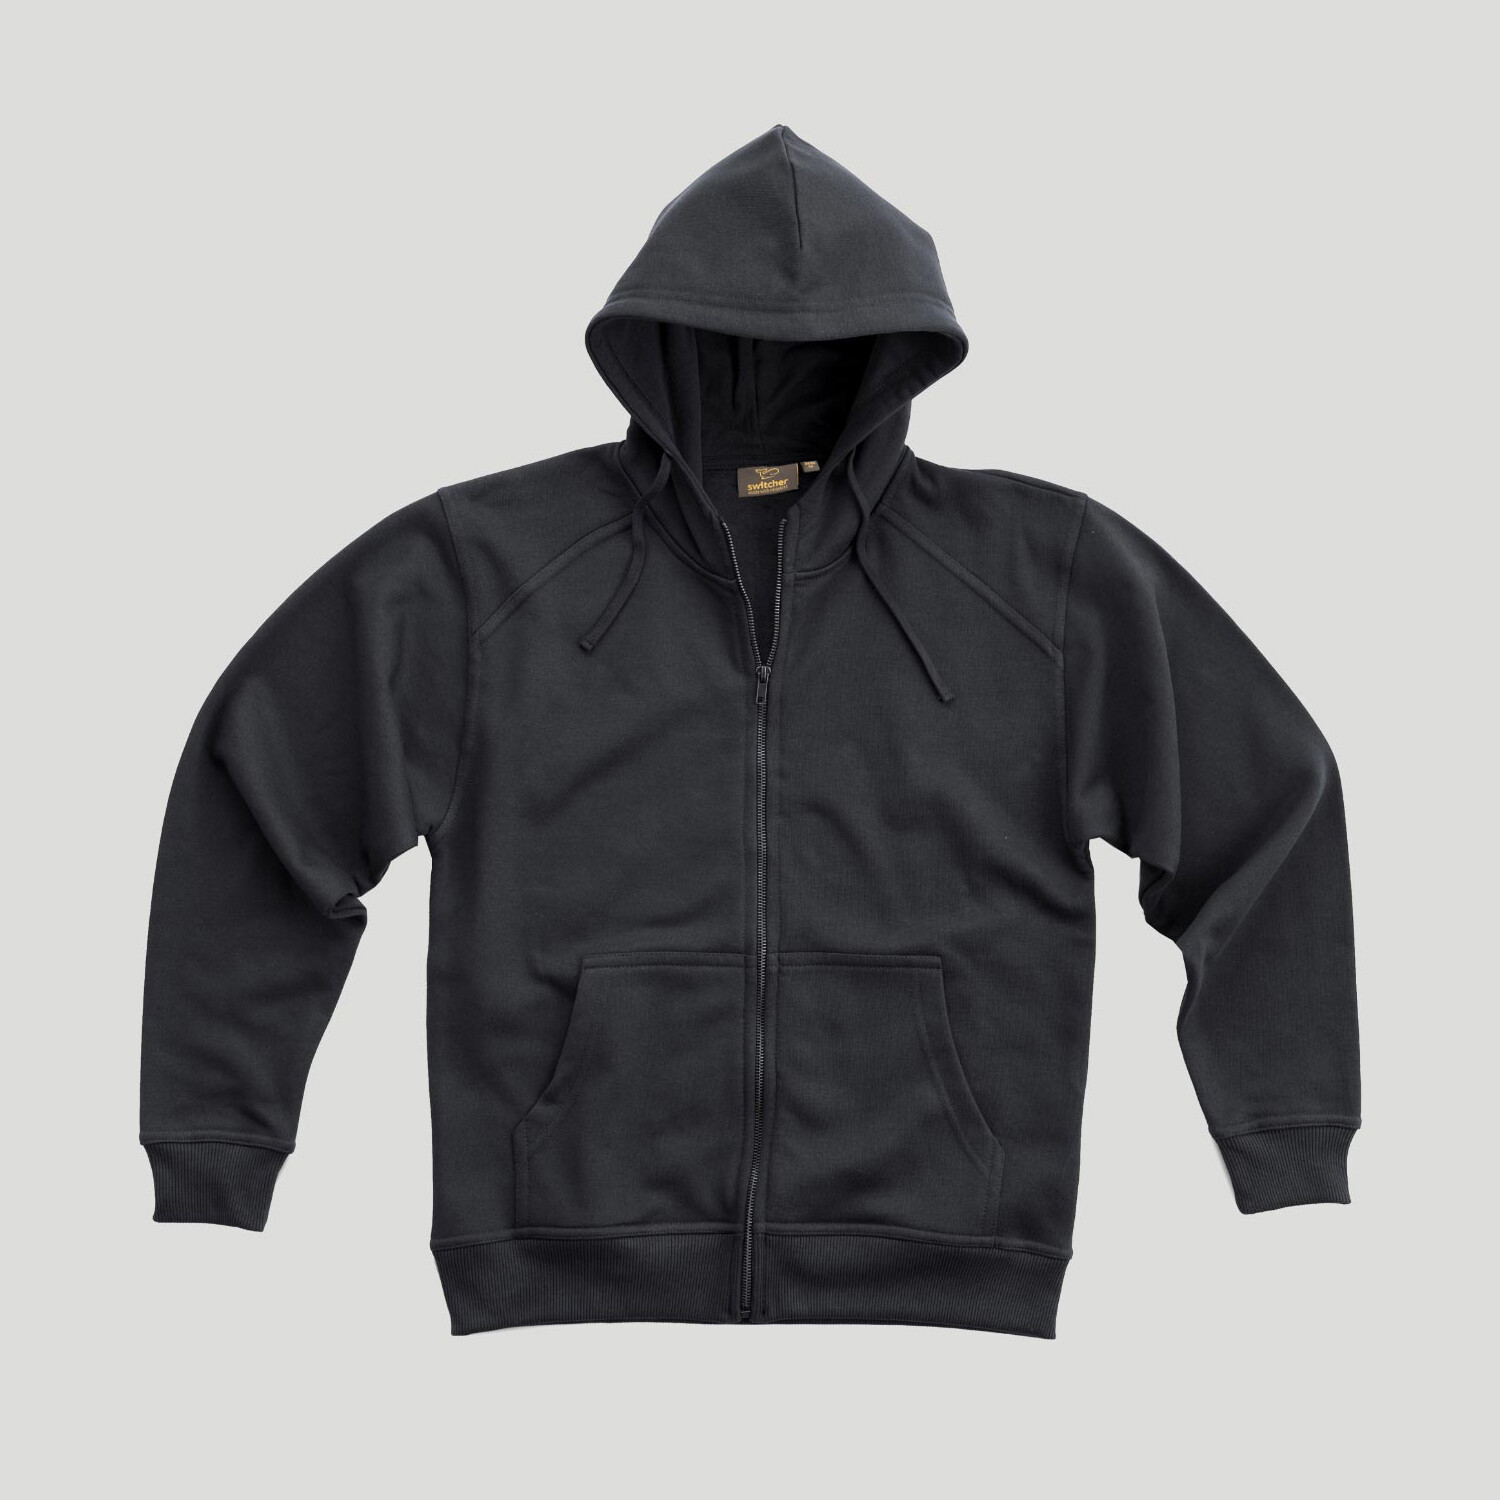 Switcher Kapuze Sweatjacke Miami